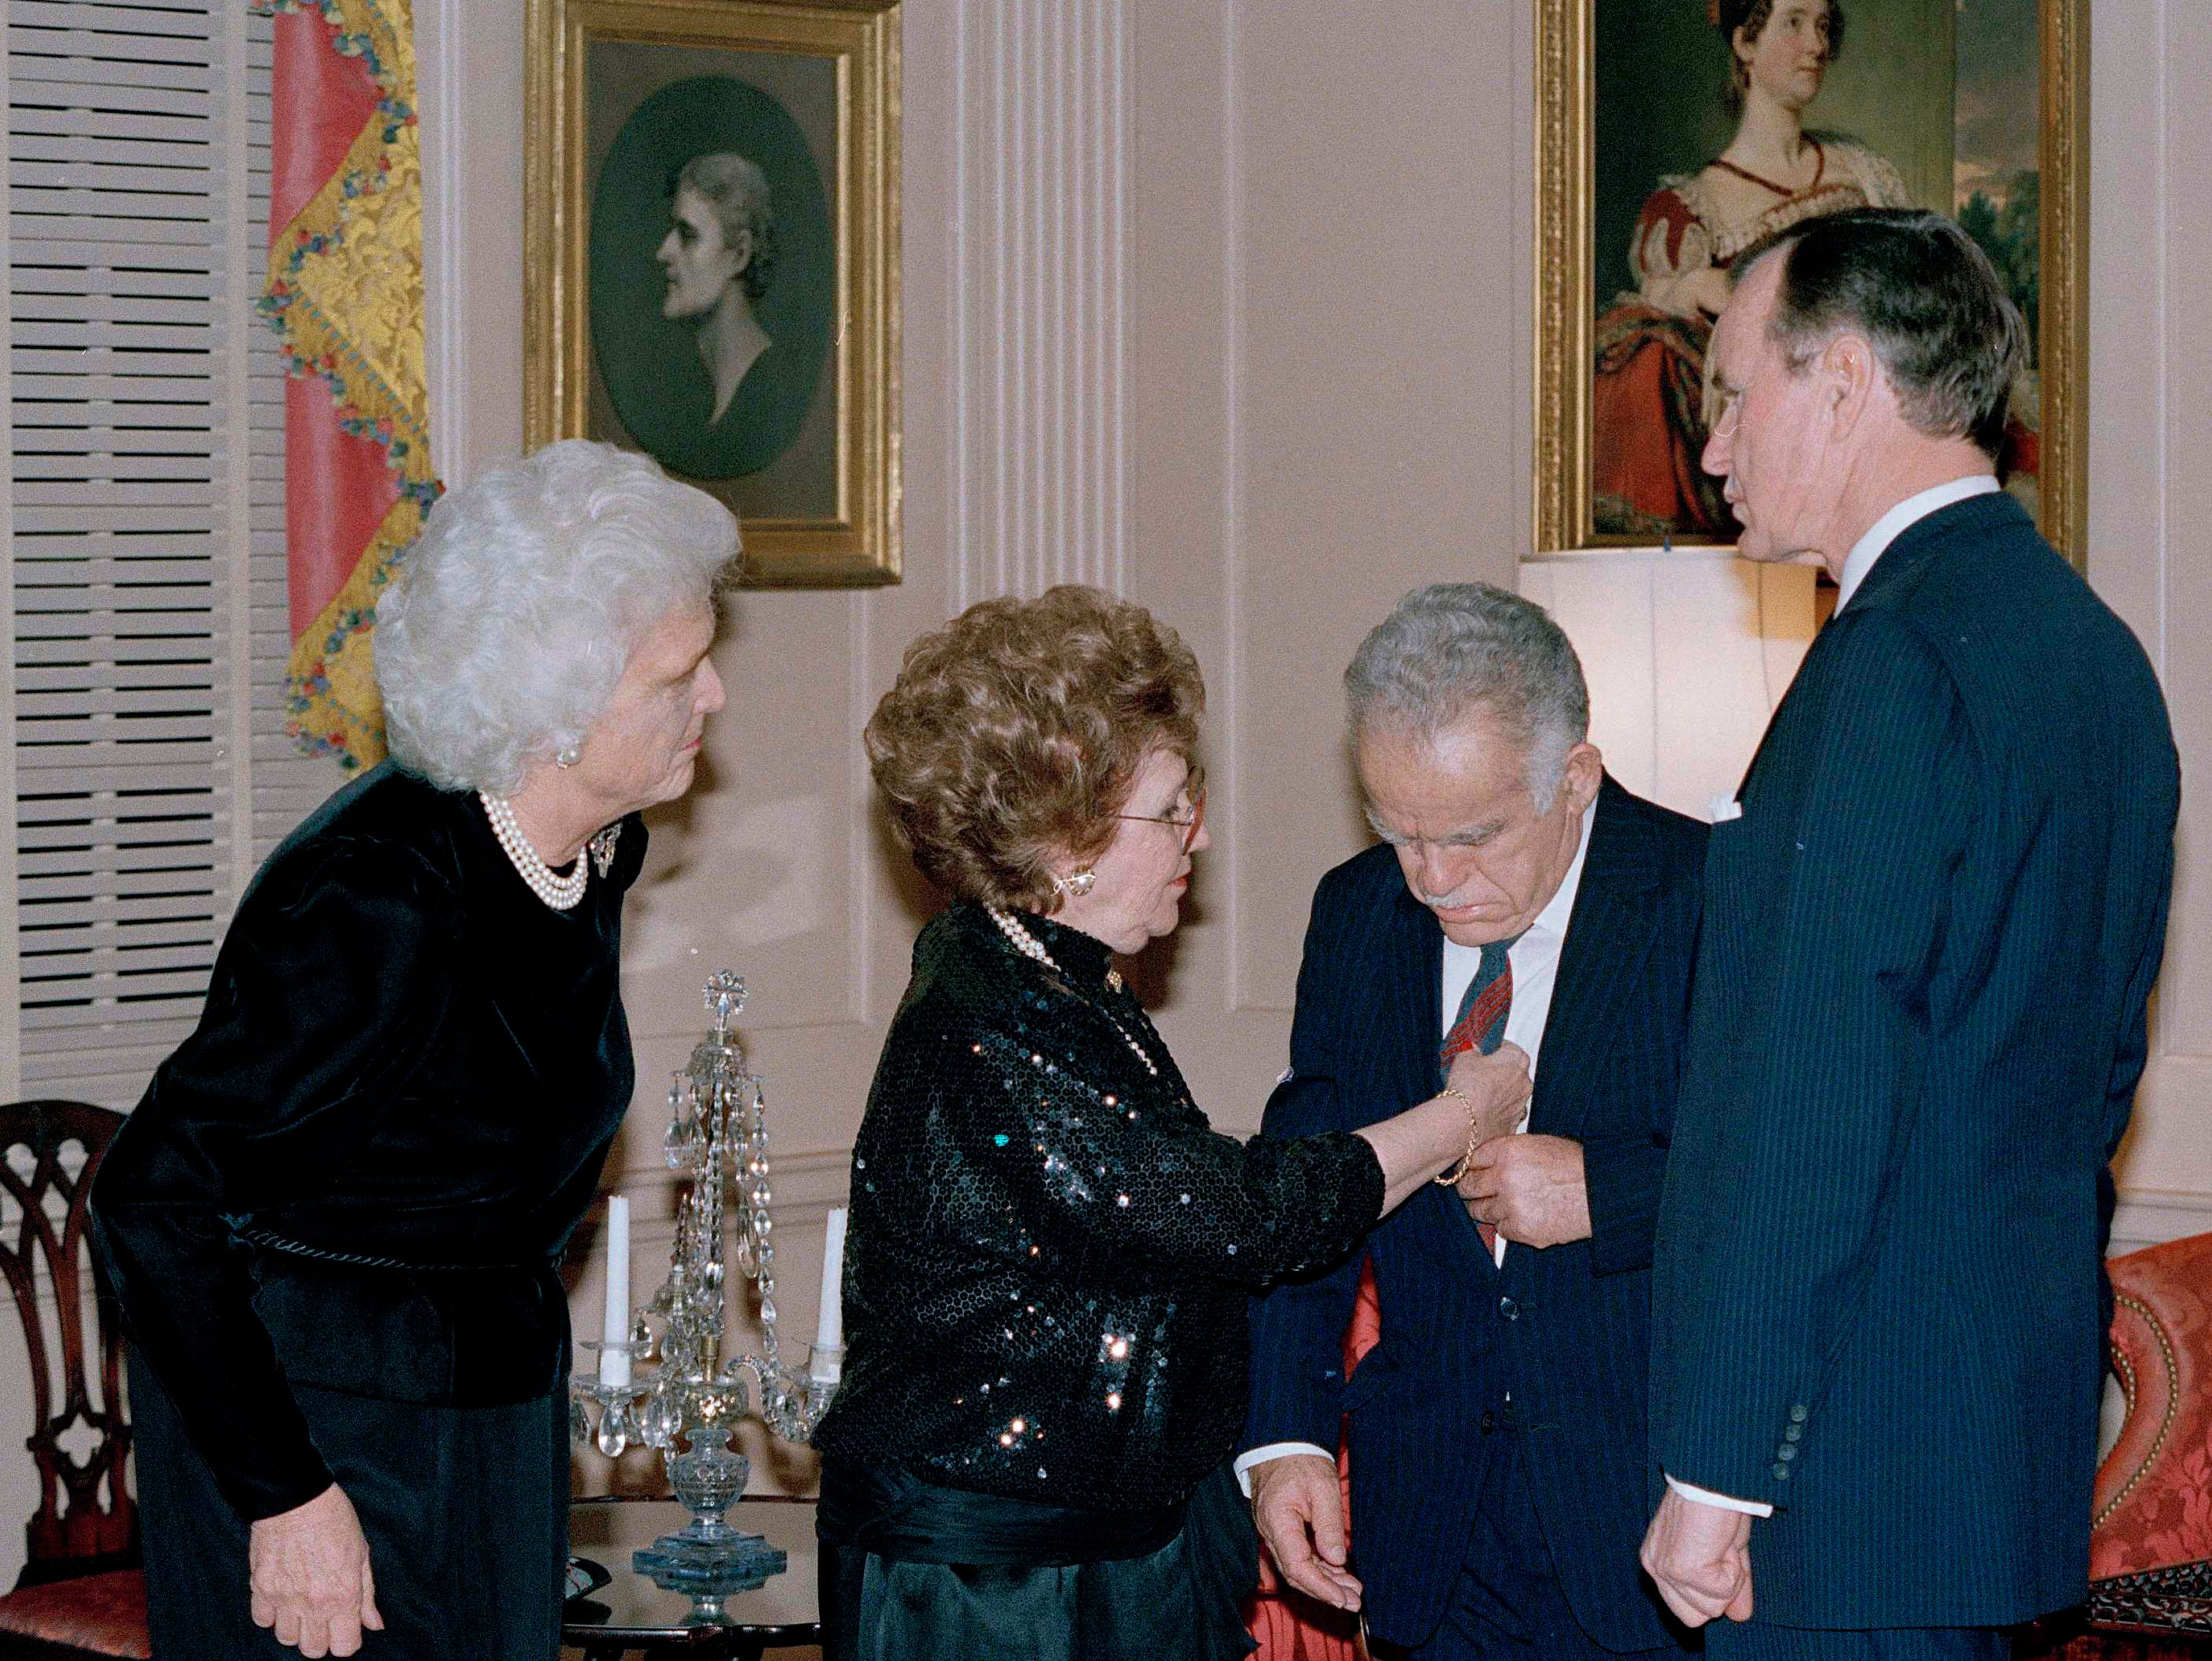 Israeli Prime Minister Yitzhak Shamir has his tie adjusted by his wife Shulamit before a dinner in their honor at the State Department in Washington, D.C., Feb. 19, 1987. At right is Vice President George Bush and at left is his wife Barbara. (AP Photo/Ira Schwarz)